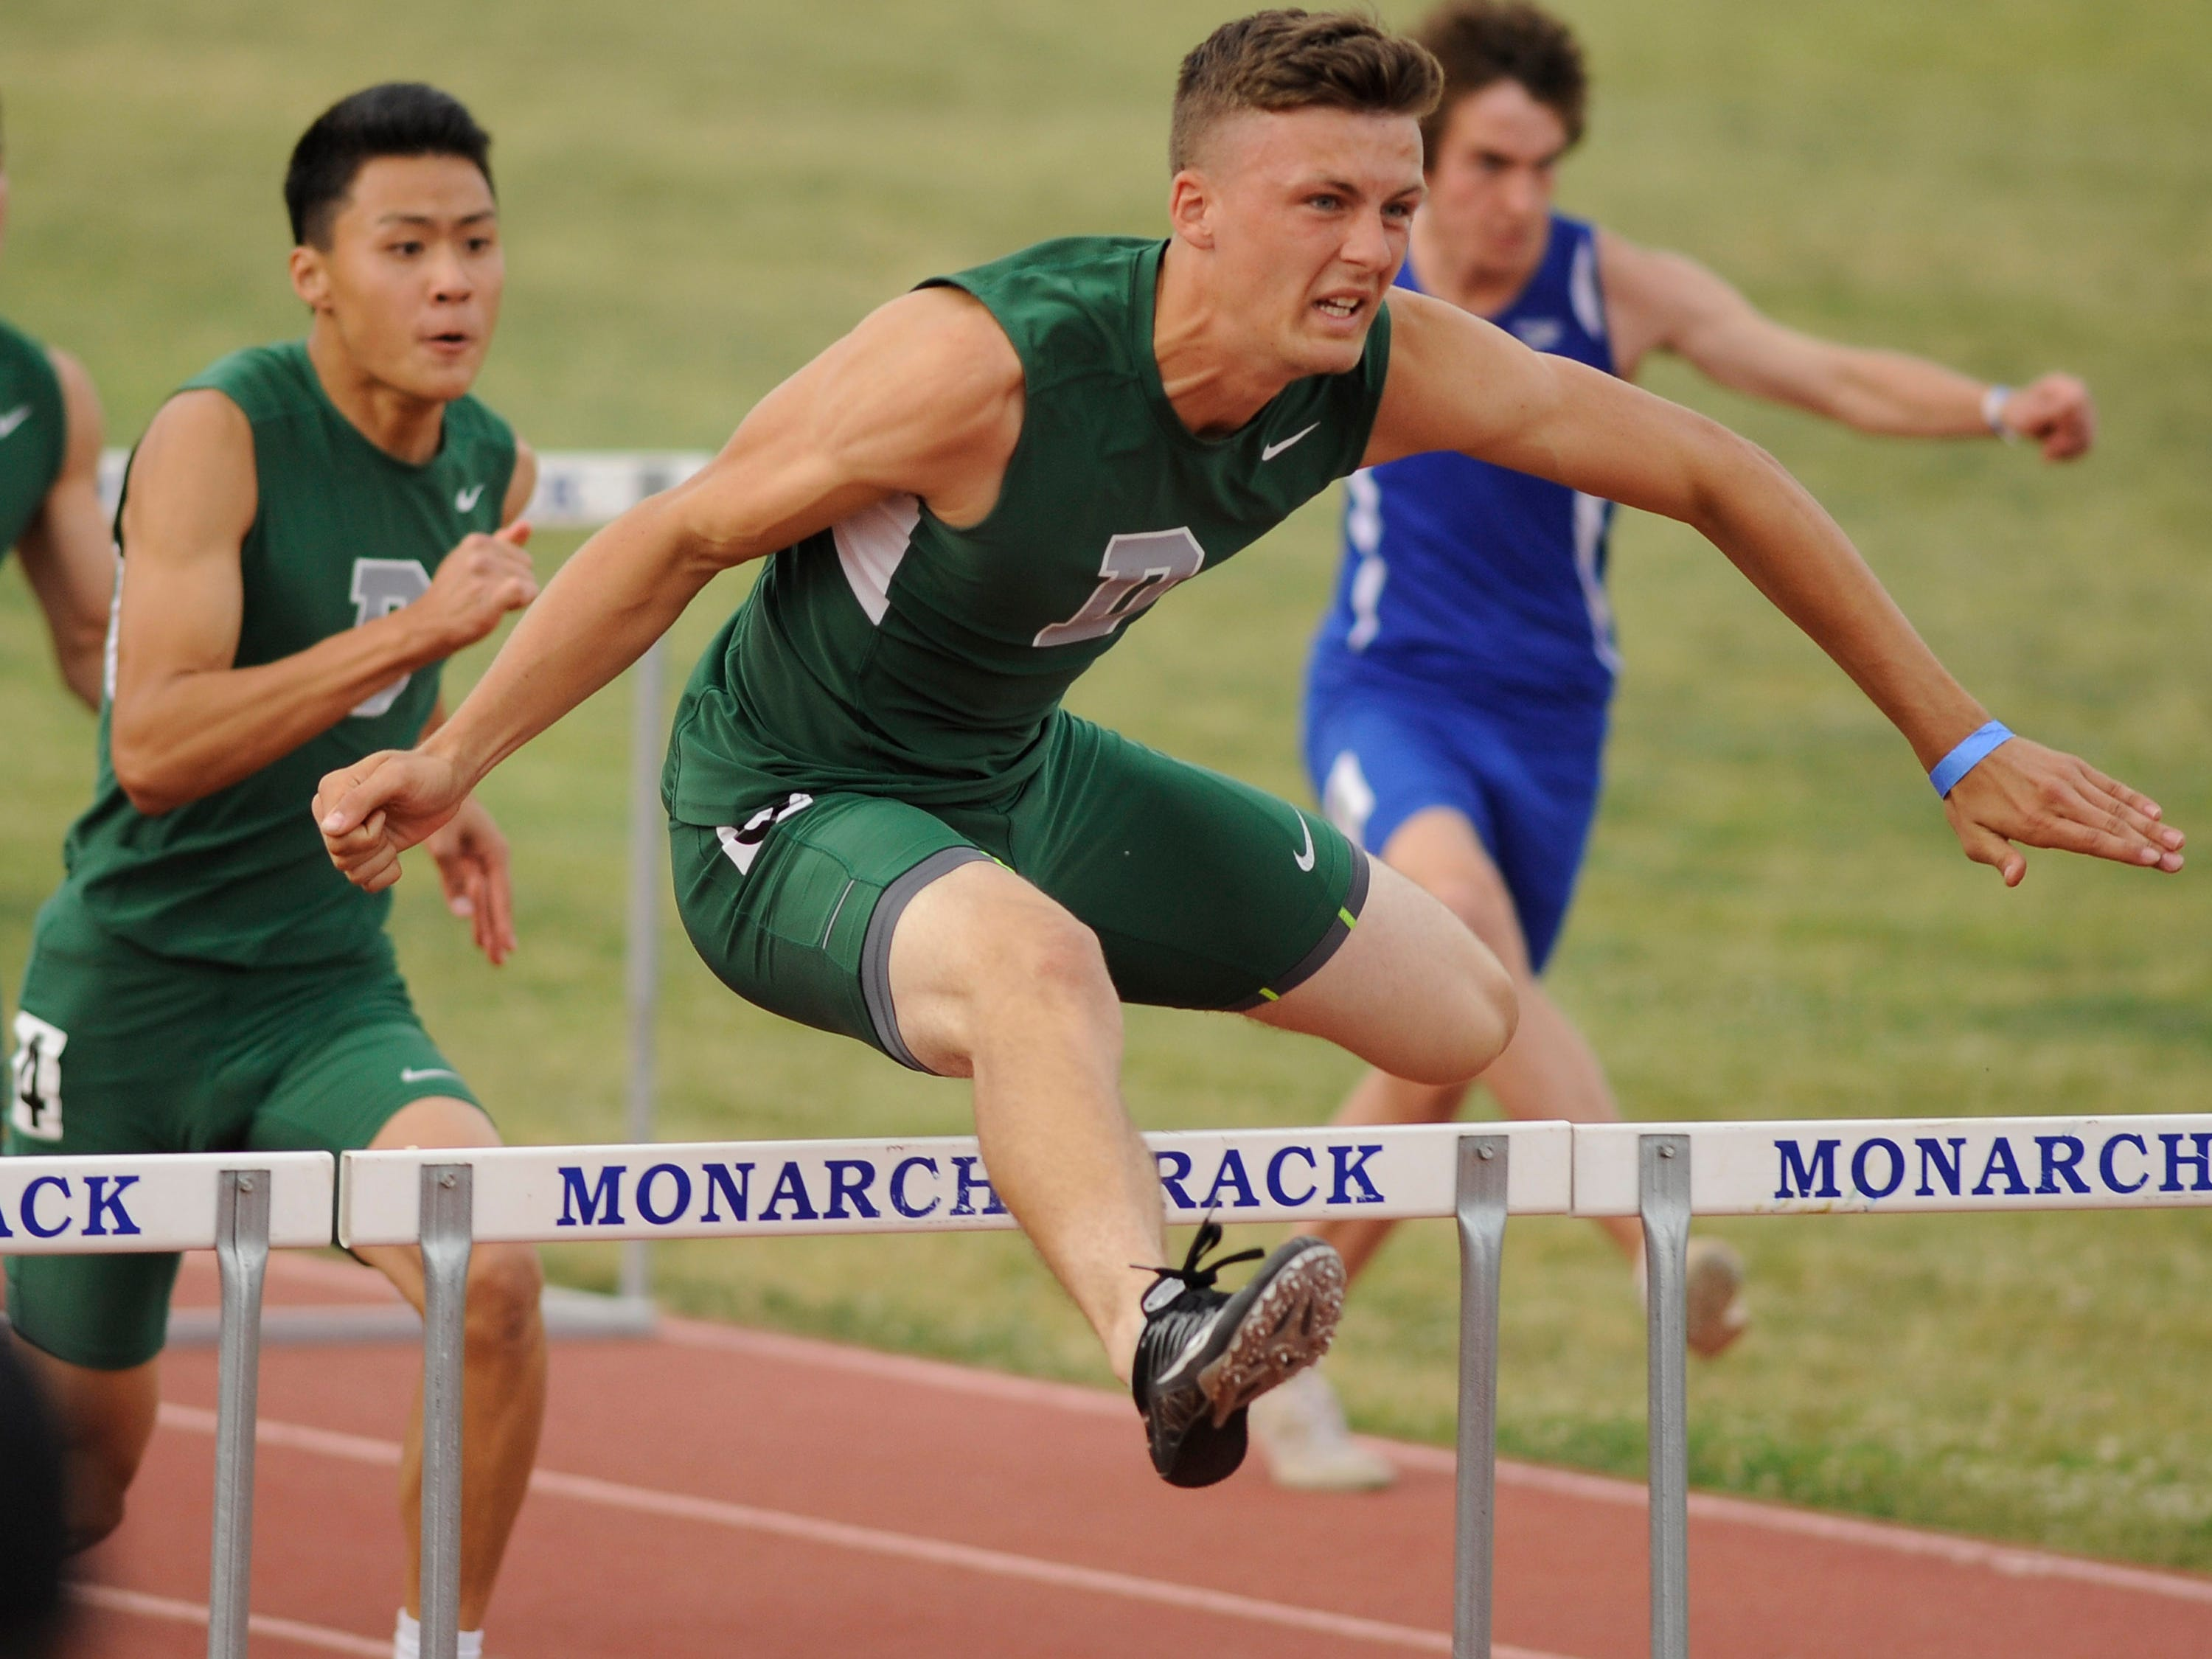 Dinuba's Isaac Leppke is ranked No. 1 in the Central Section in the boys' 110-meter high hurdles. The Central Section Championships are Saturday in Clovis.